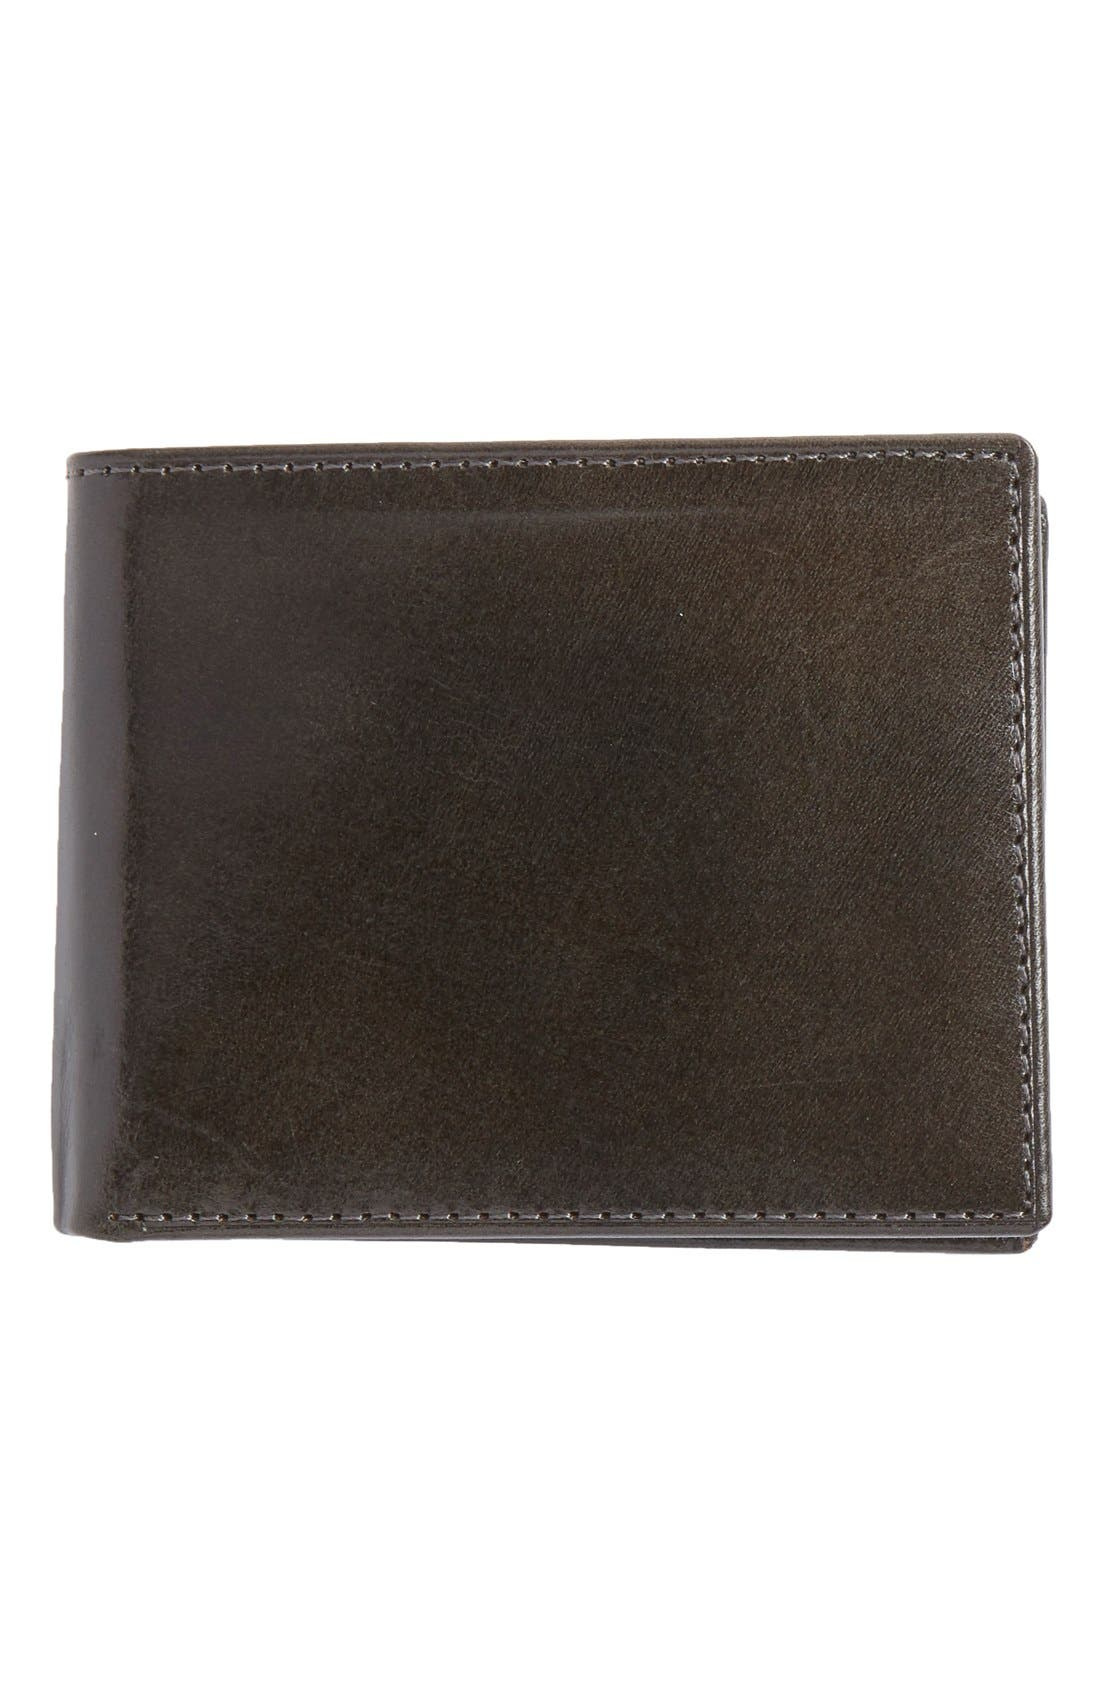 Flip Billfold Leather Wallet,                             Main thumbnail 1, color,                             020